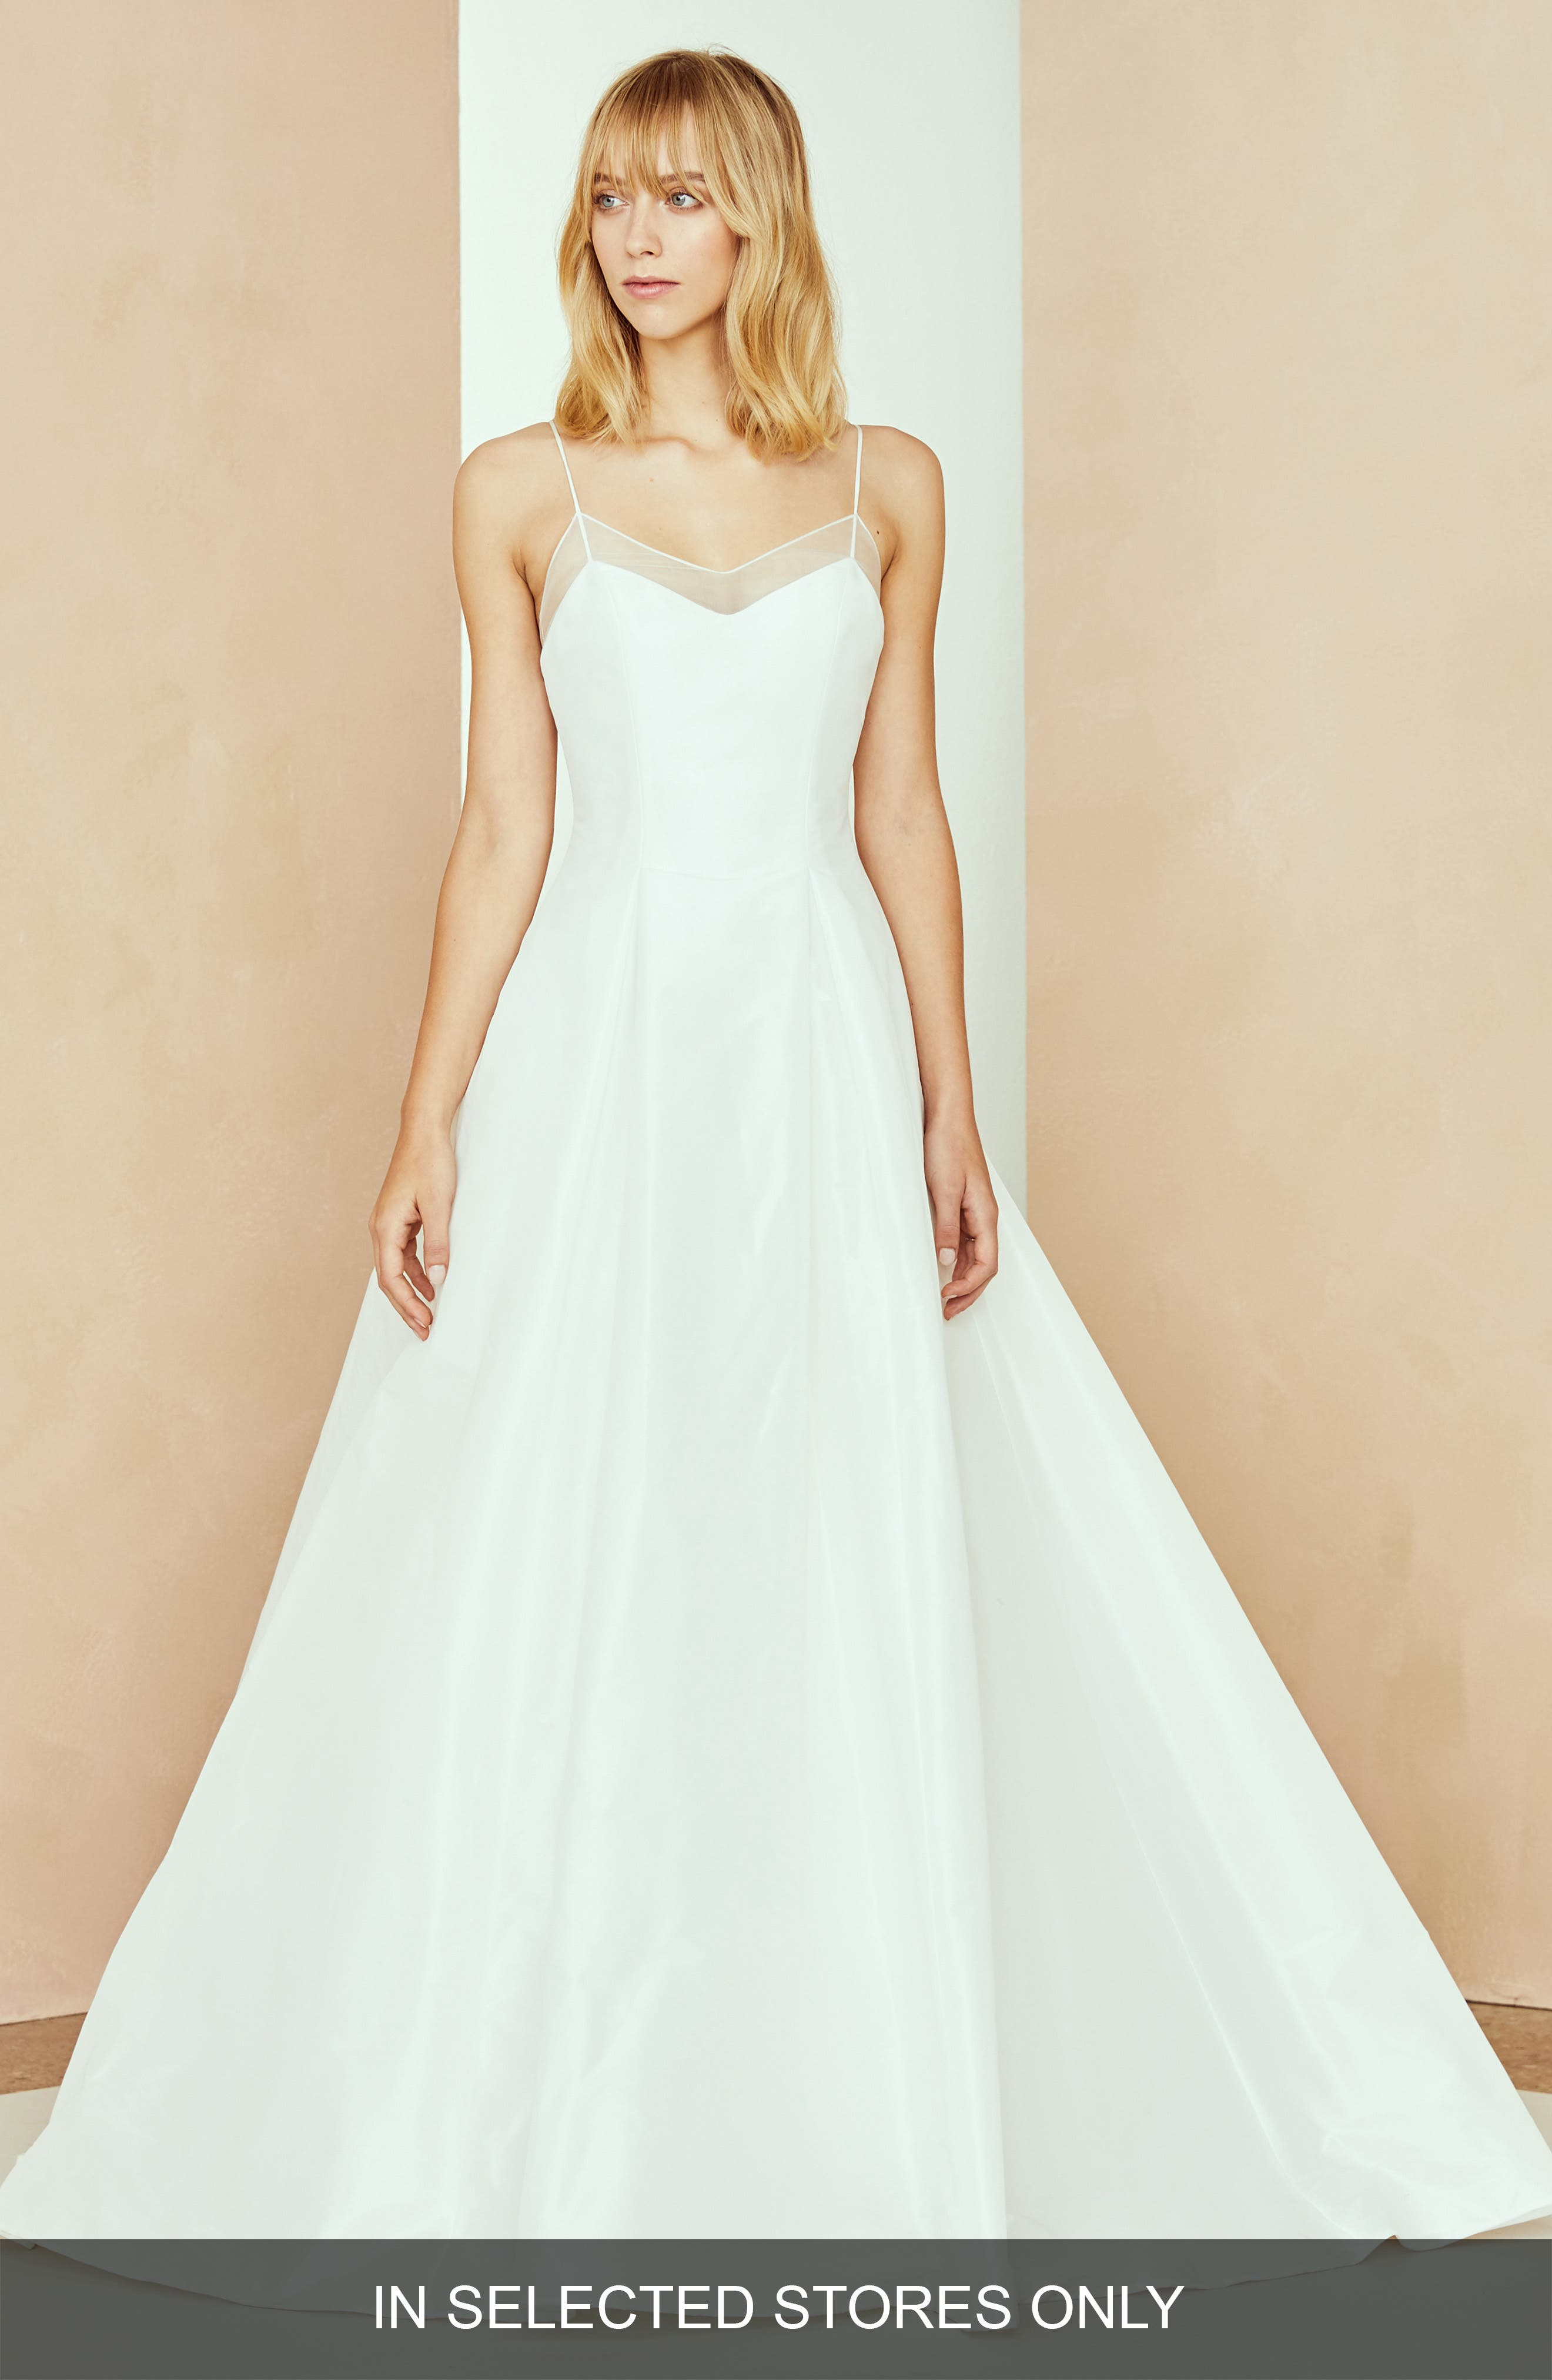 Nouvelle Amsale Shea Organza Neckline Dress, Size IN STORE ONLY - White